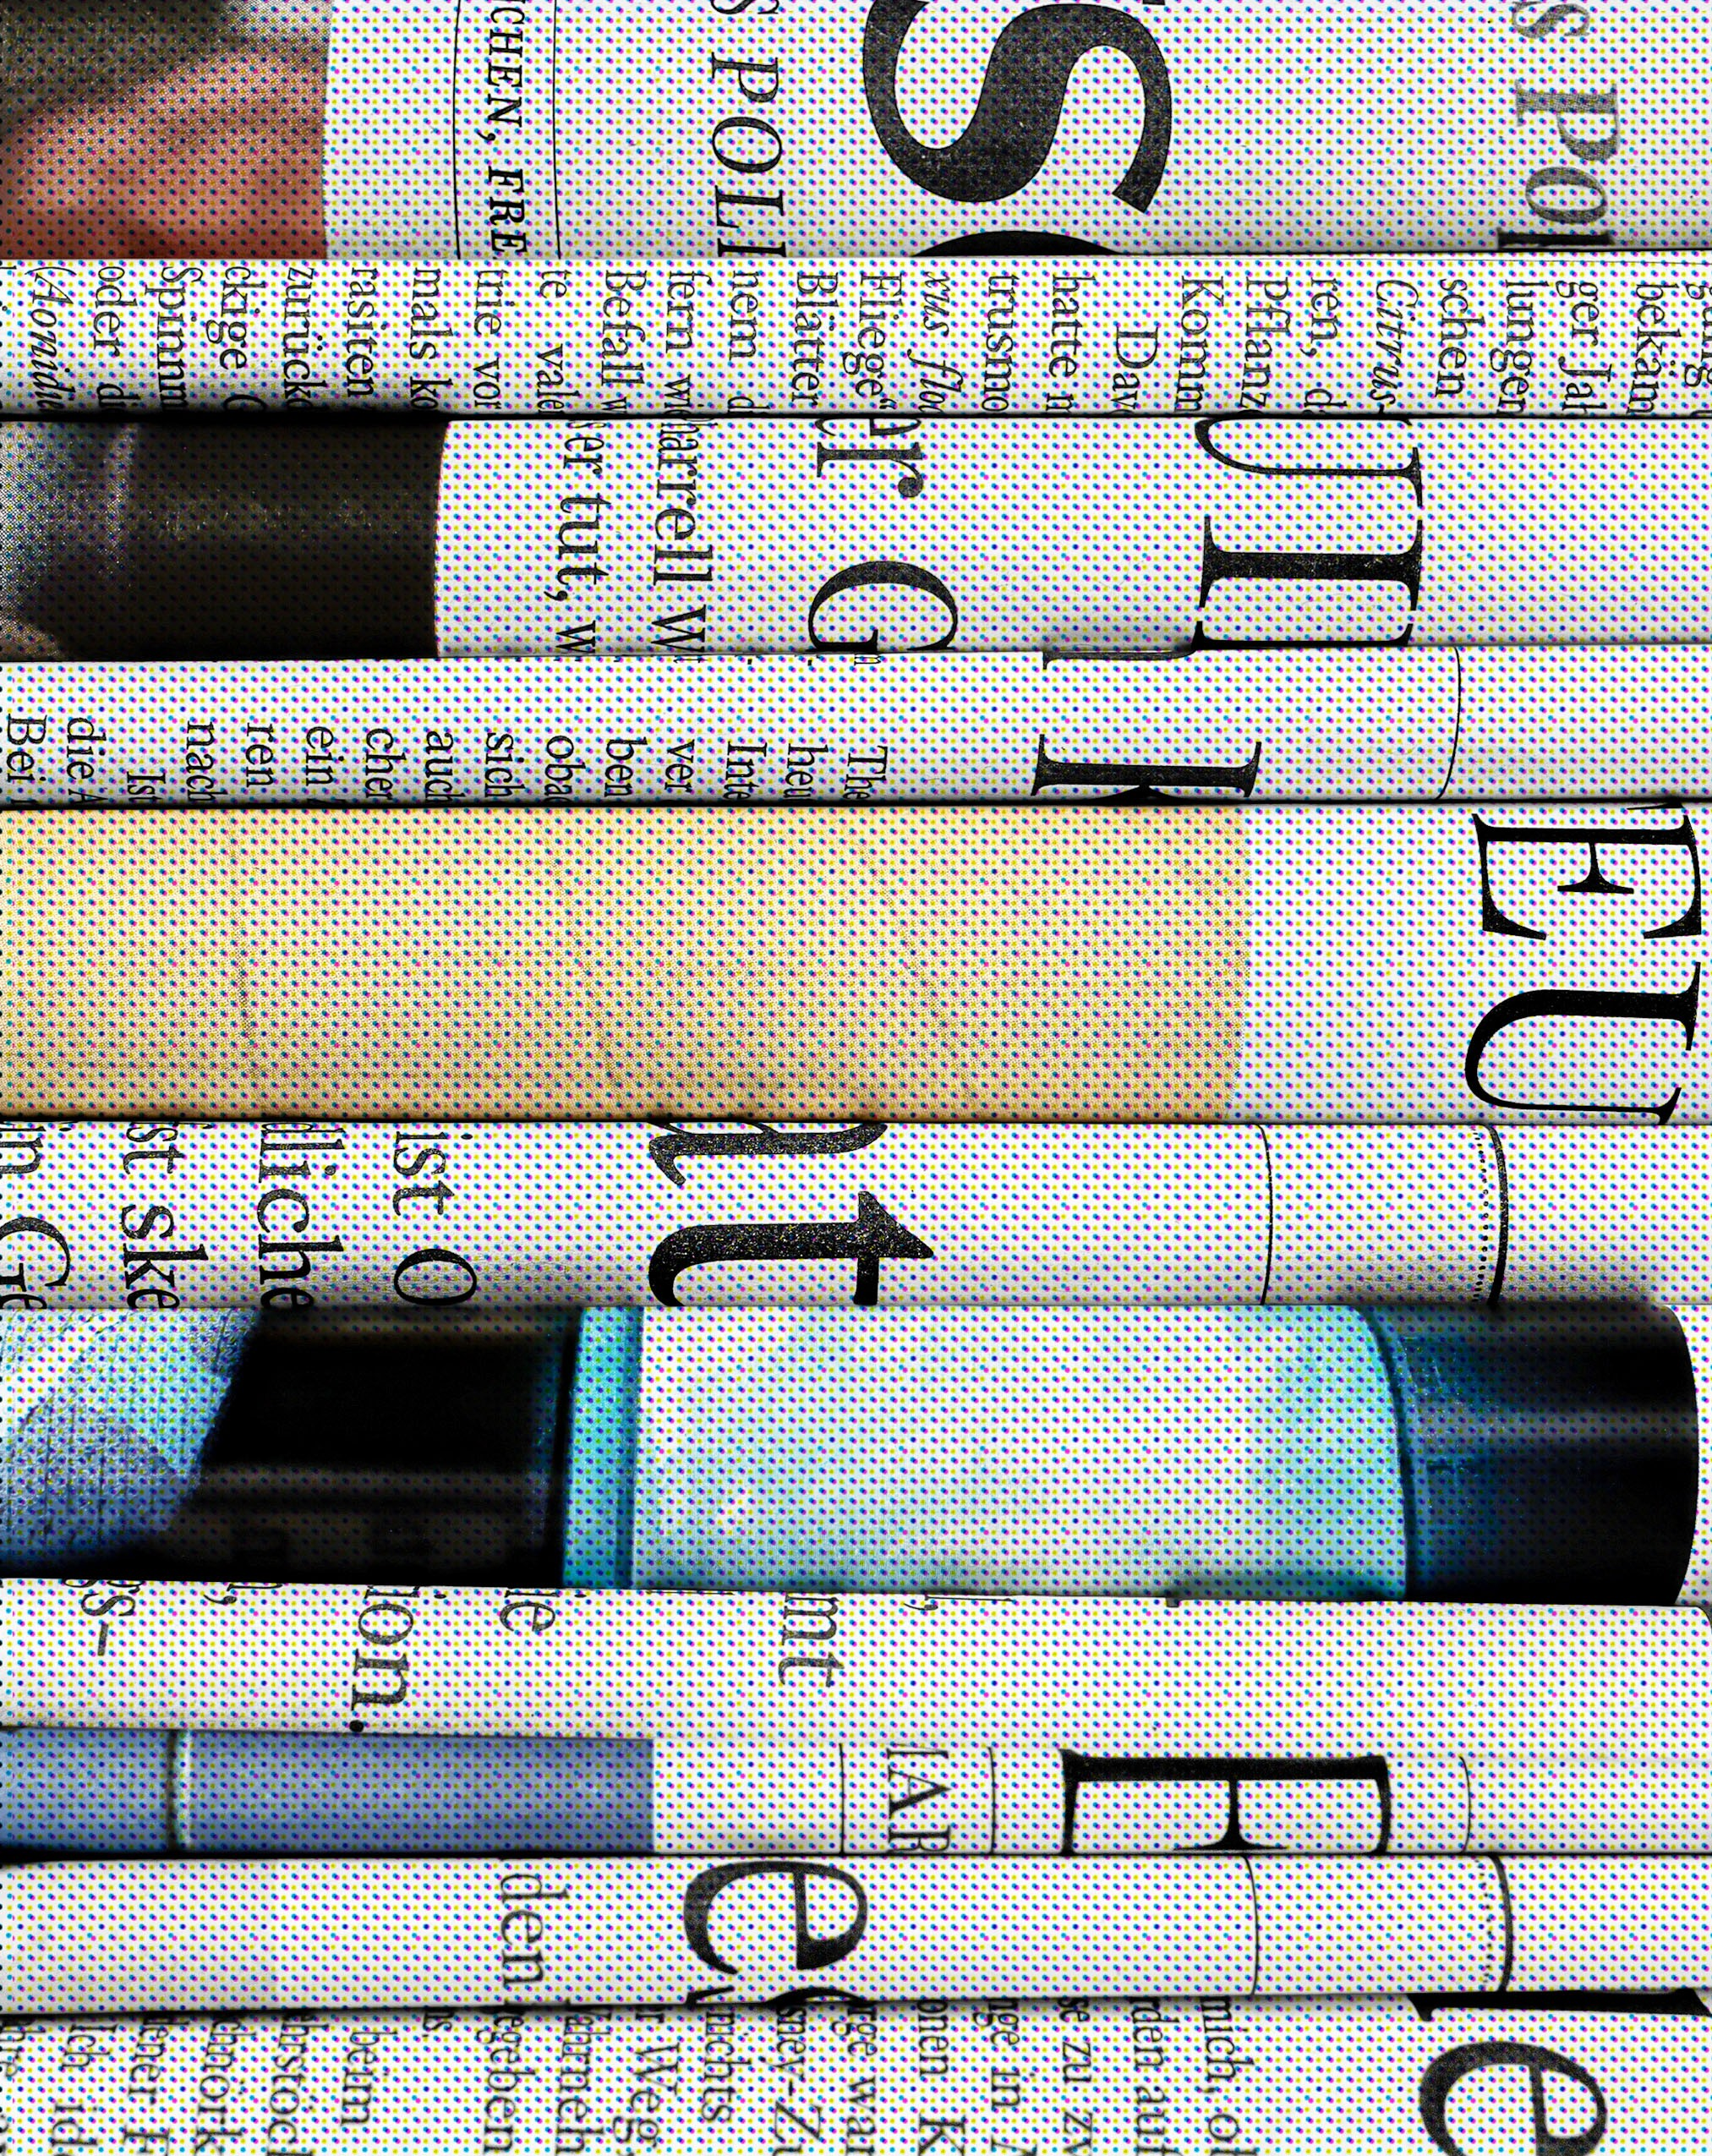 The newspaper shuffle: Journalism is changing and so is local news